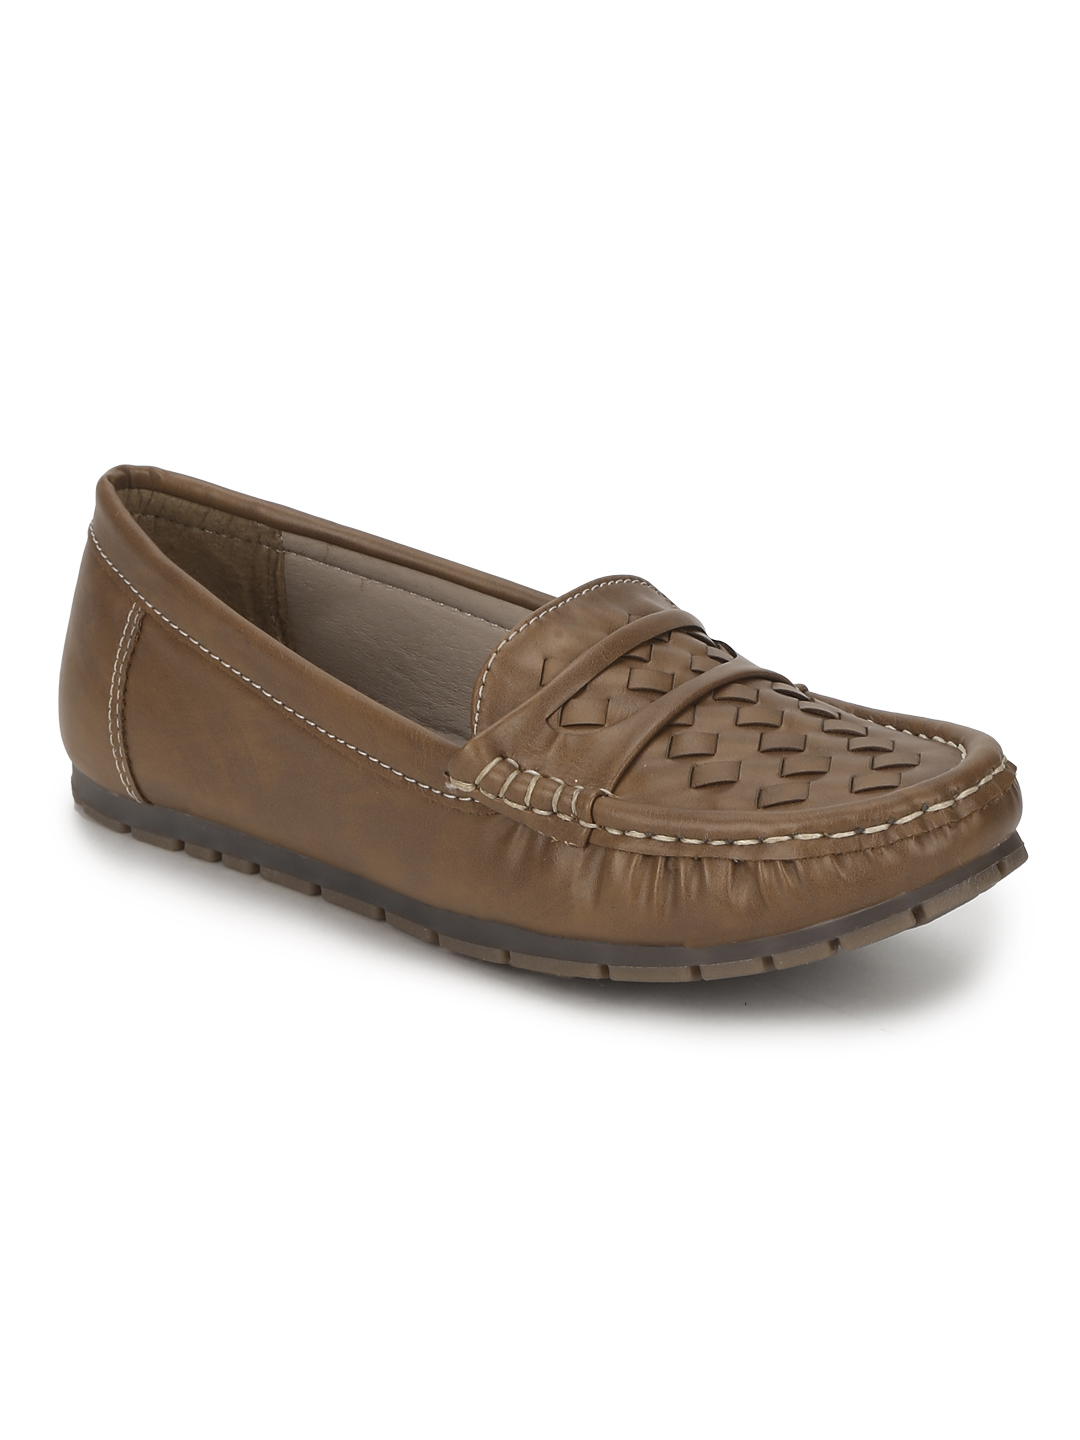 Truffle Collection | Tan PU Loafers With Weaves